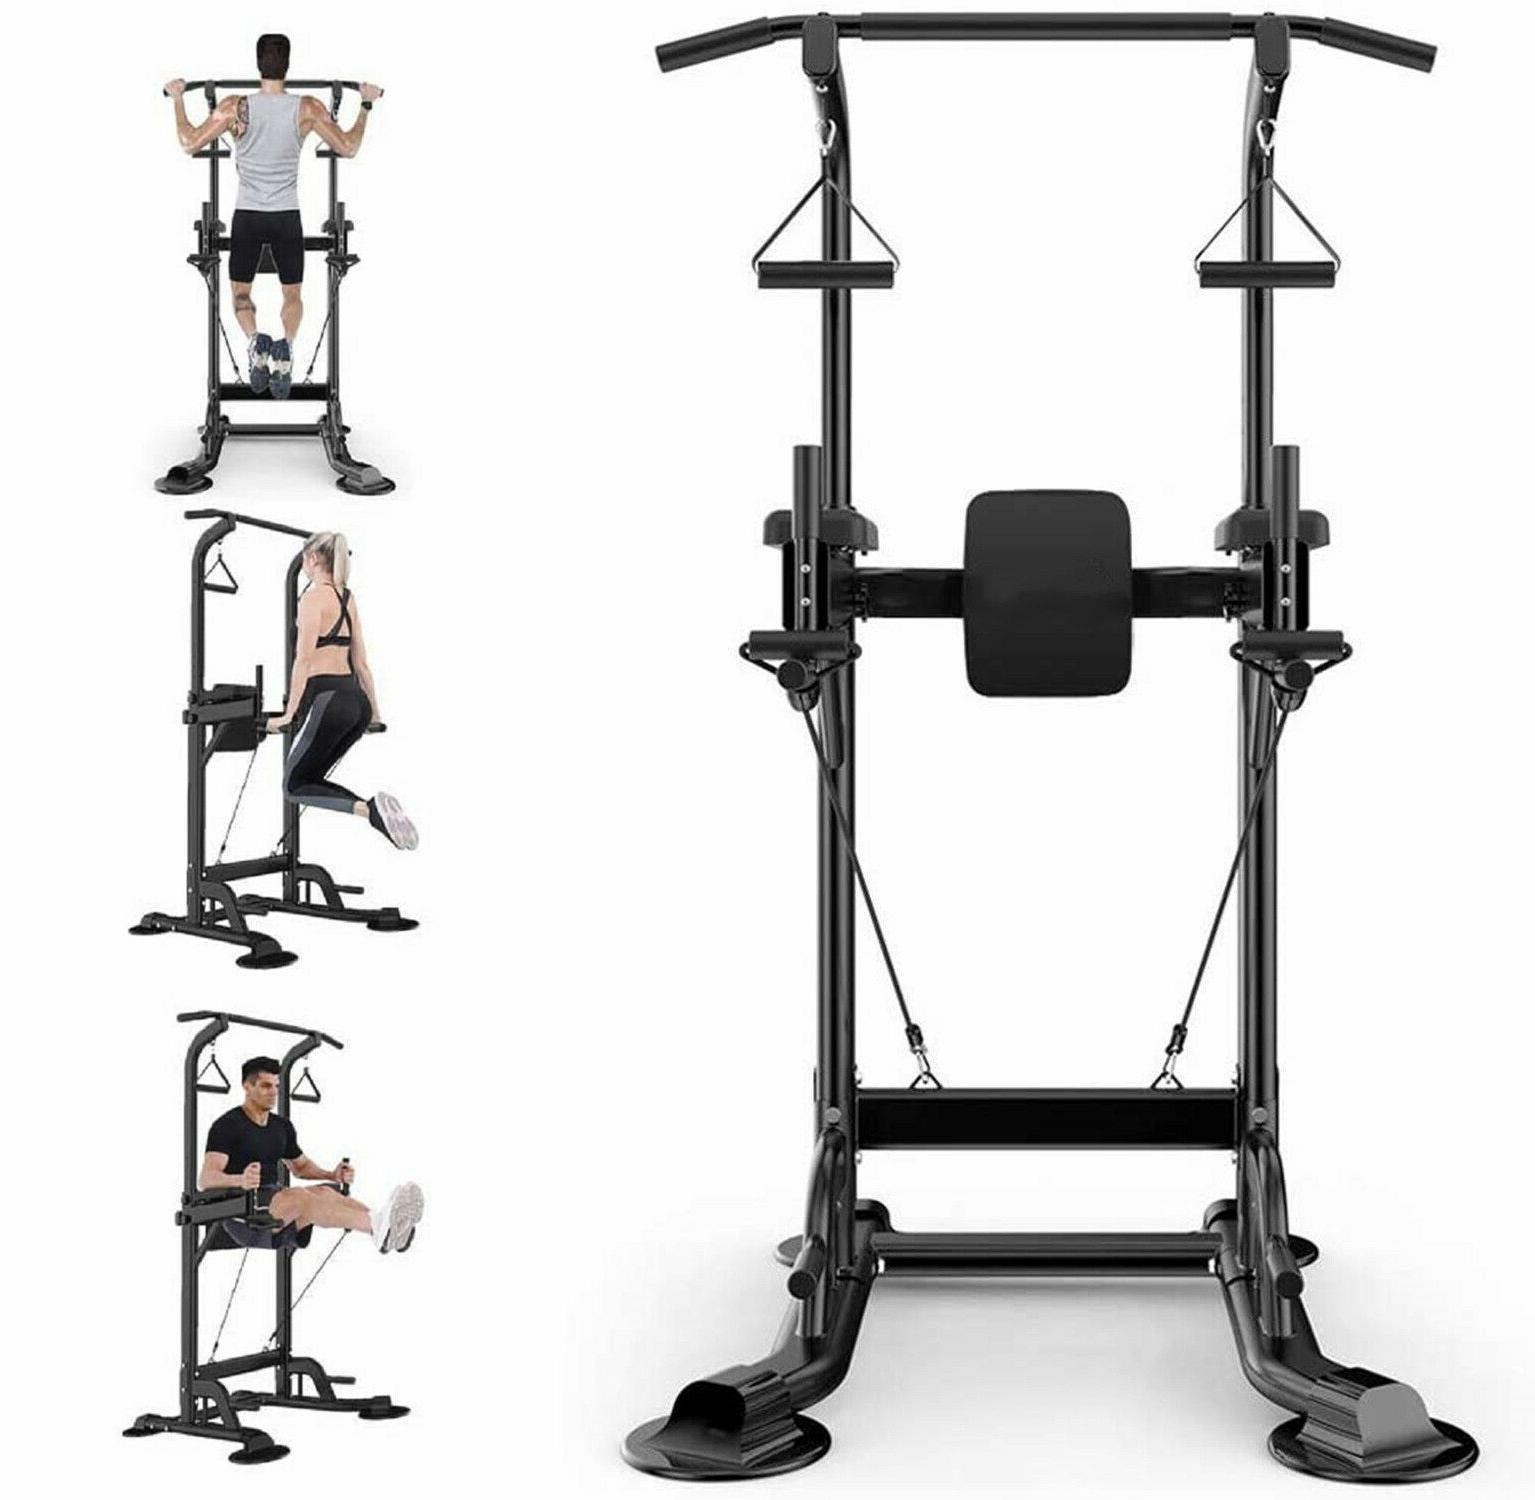 LB Power Tower Pull-up Fitness Equipment functional Home Up